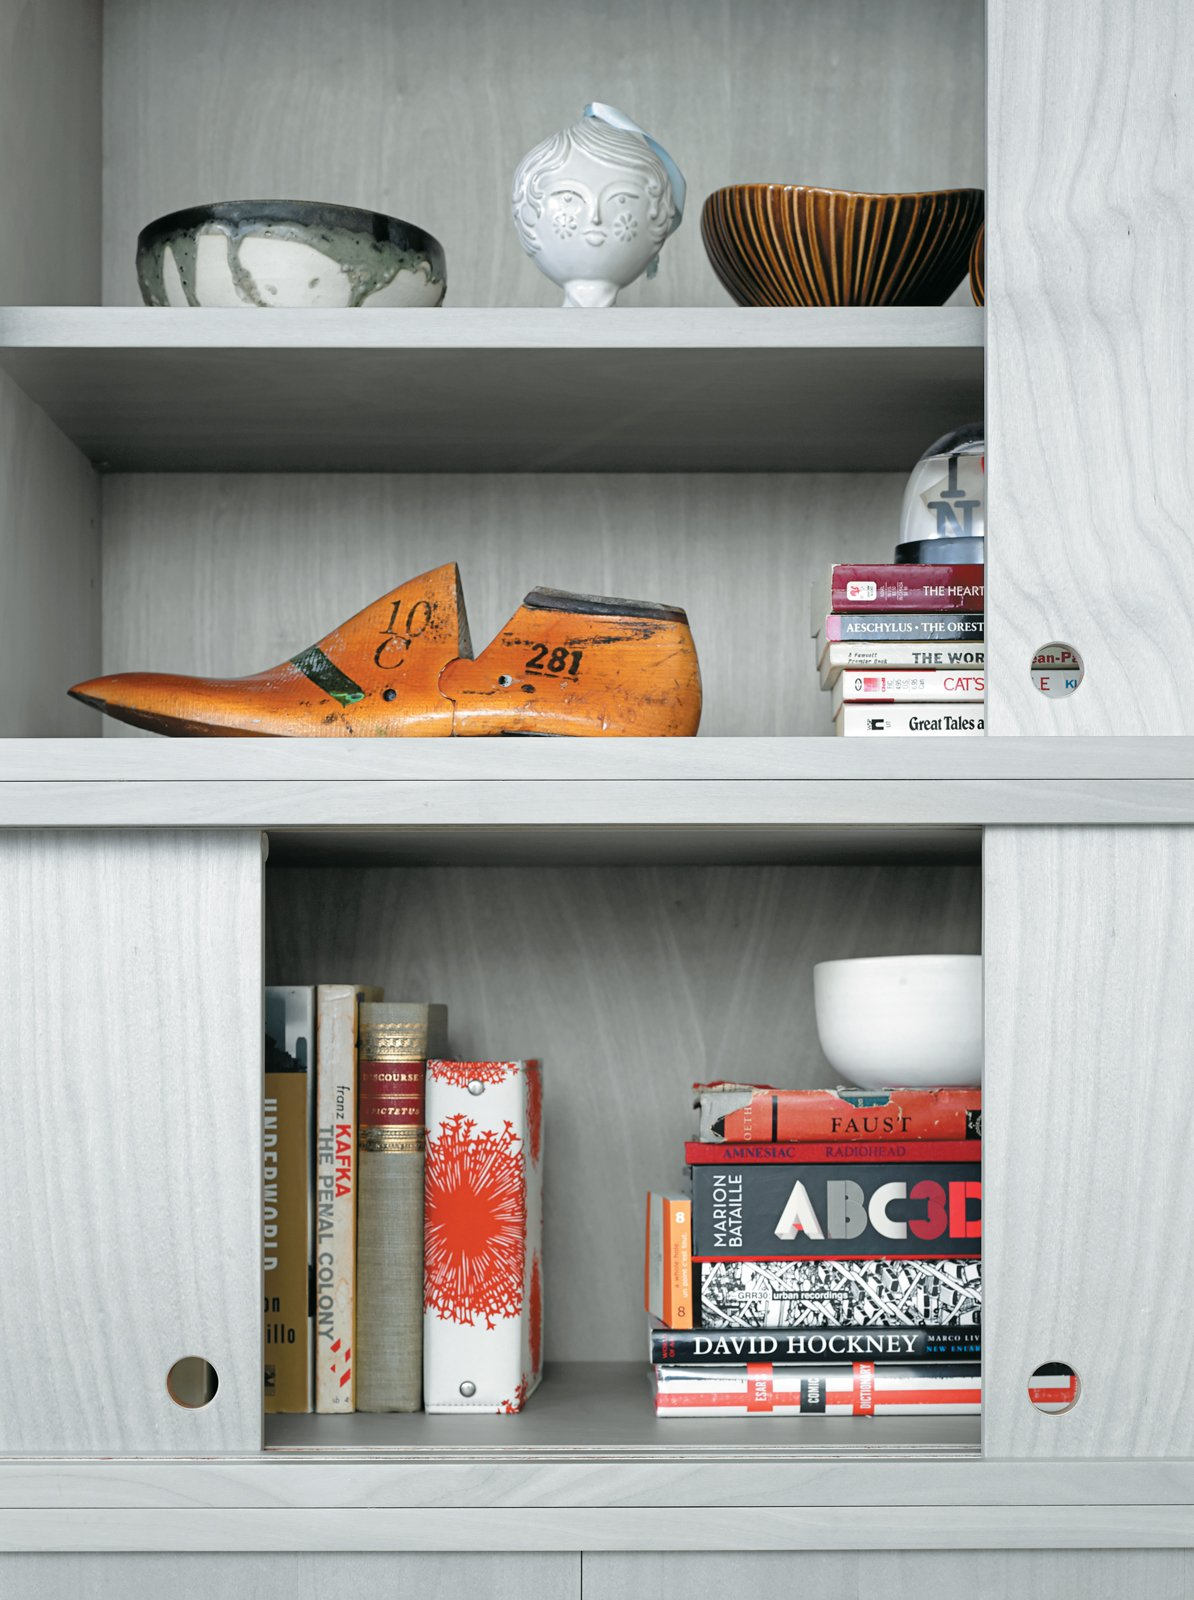 The cabinet doors of the living room wall unit, in birch veneer painted a calming gray, slide with silken ease but never fully close, leaving strategic gaps for the display of Jun's eclectic array of books and objects.  Take Me to Birch: 8 Houses that Make Use of Birch Wood by Luke Hopping from A Clean Slate